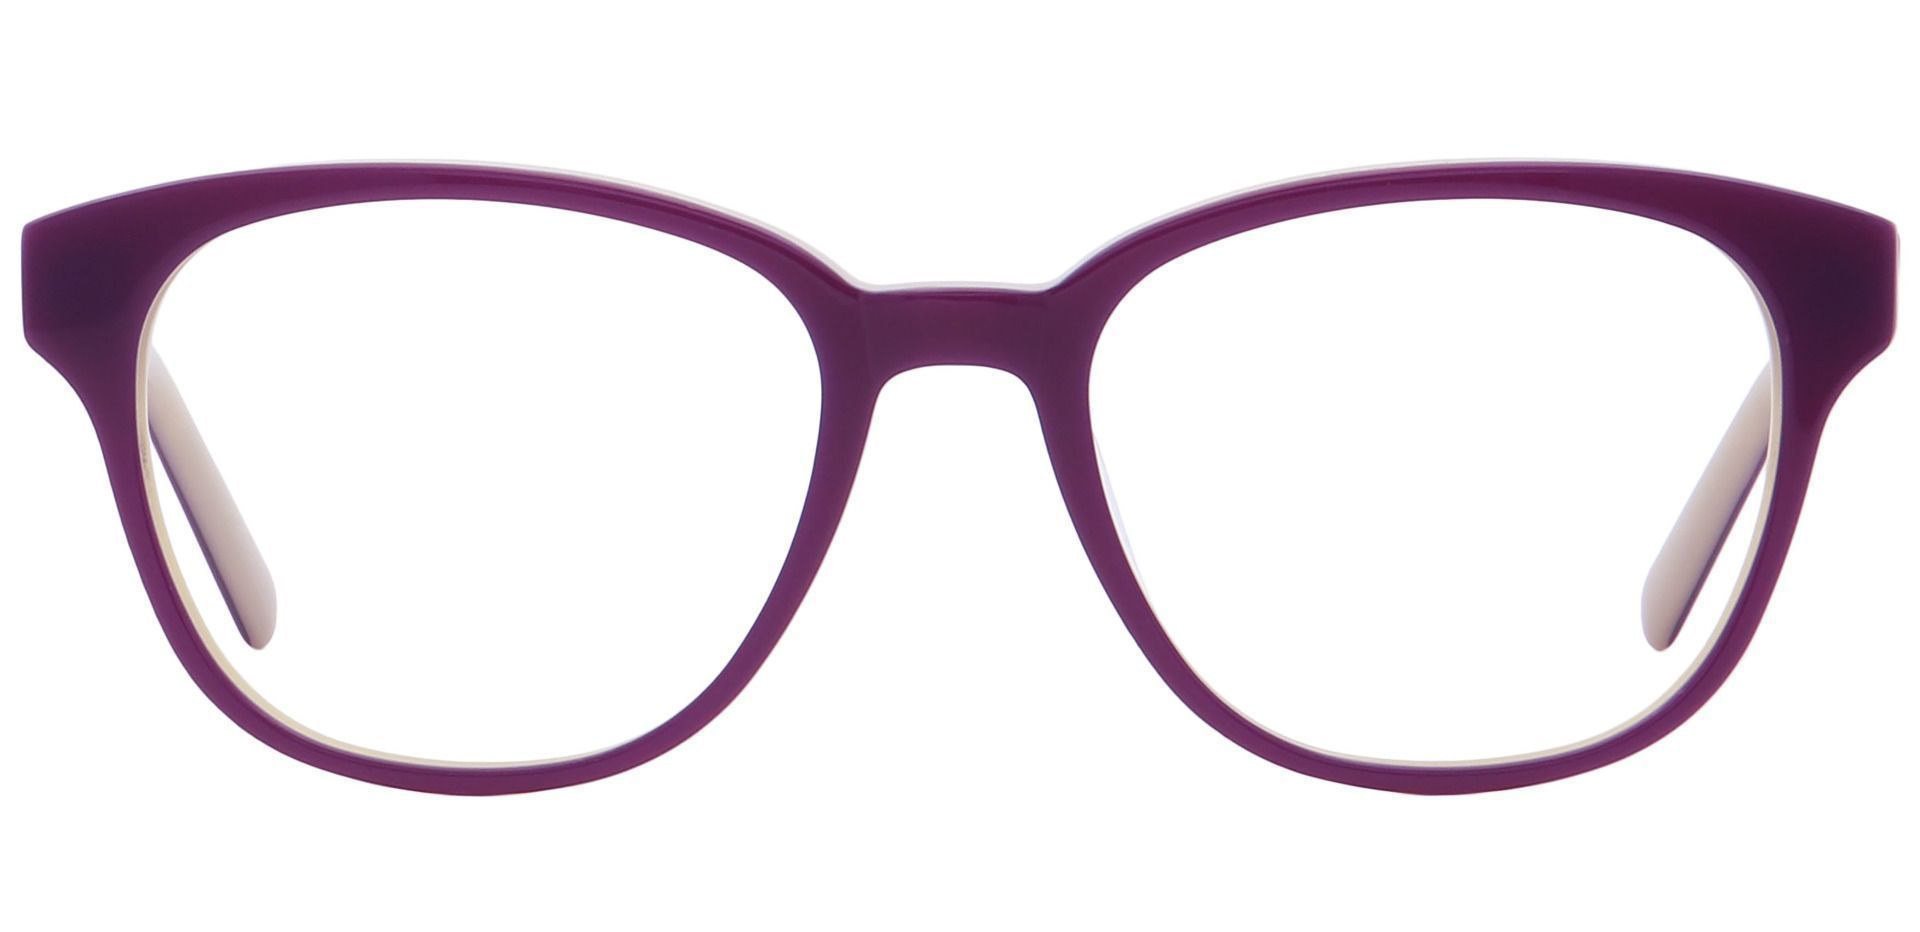 Elan Classic Square Progressive Glasses - Purple